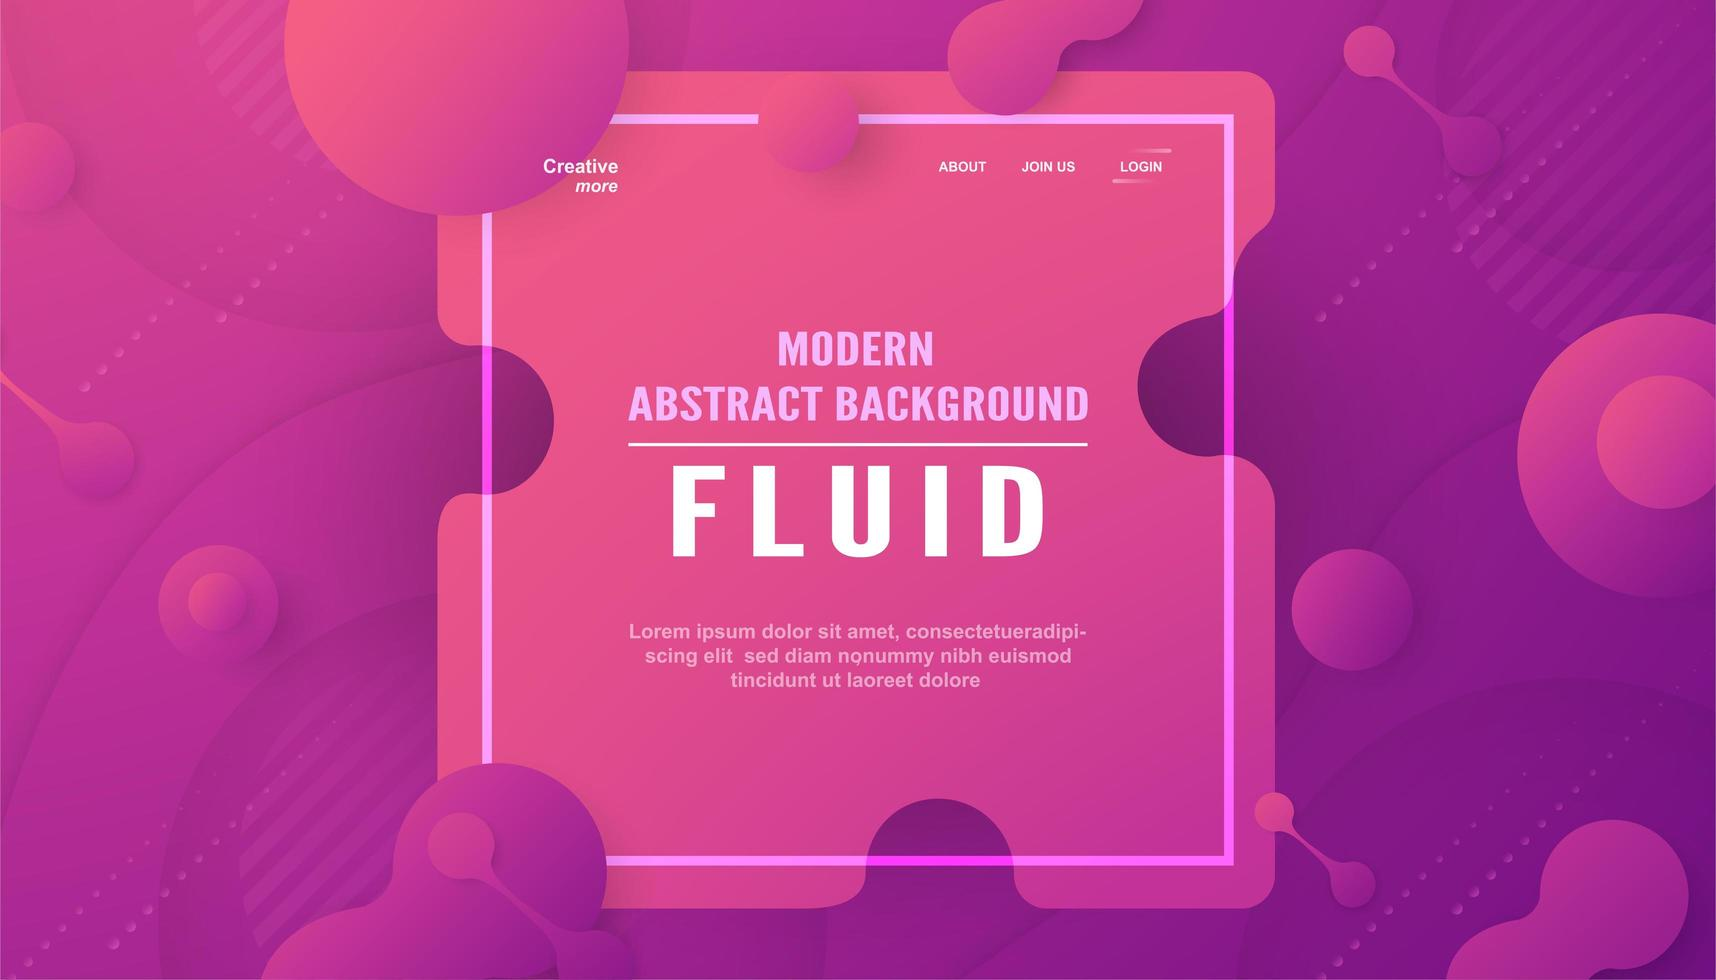 Modern abstract background in liquid and fluid style vector